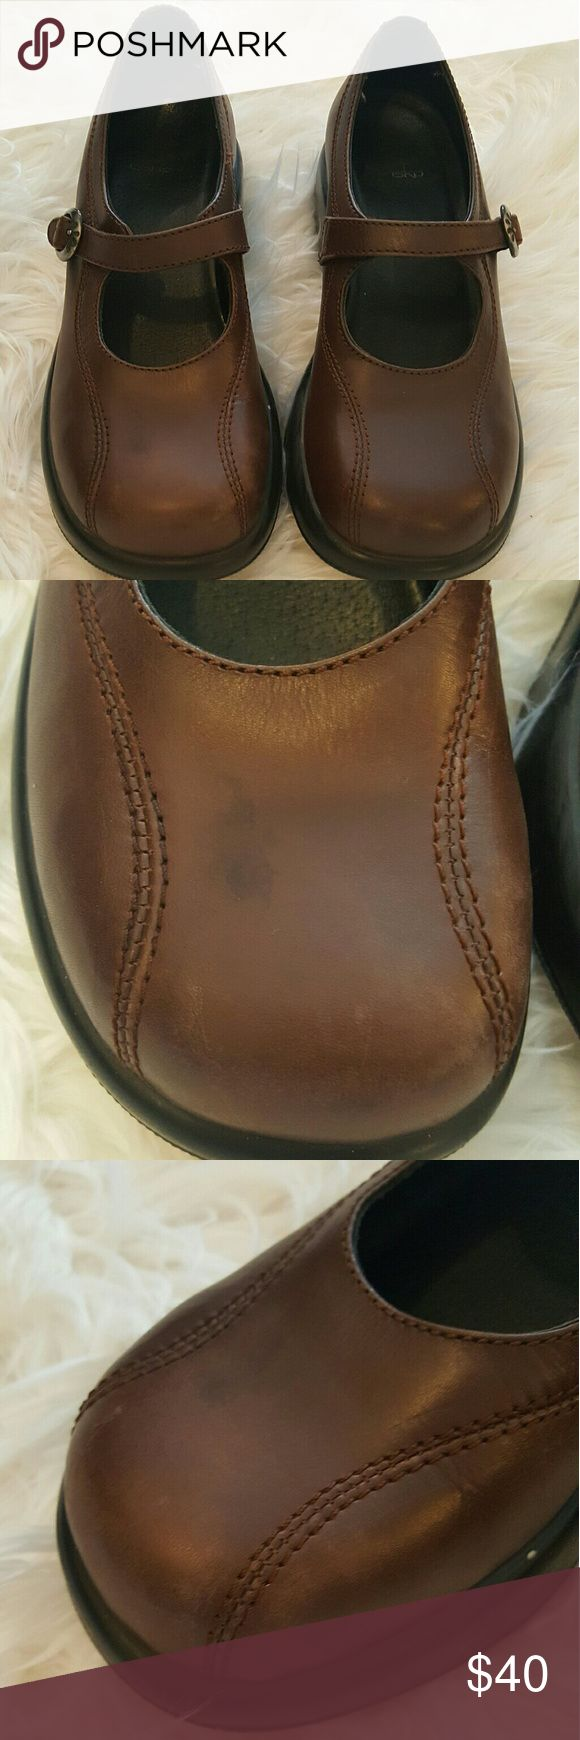 Dansko Brown Maryjane Shoes Brown Maryjane style Dansko shoes. There is a little wear and tear, but there is ALOT OF life left in these shoes. Dansko Shoes